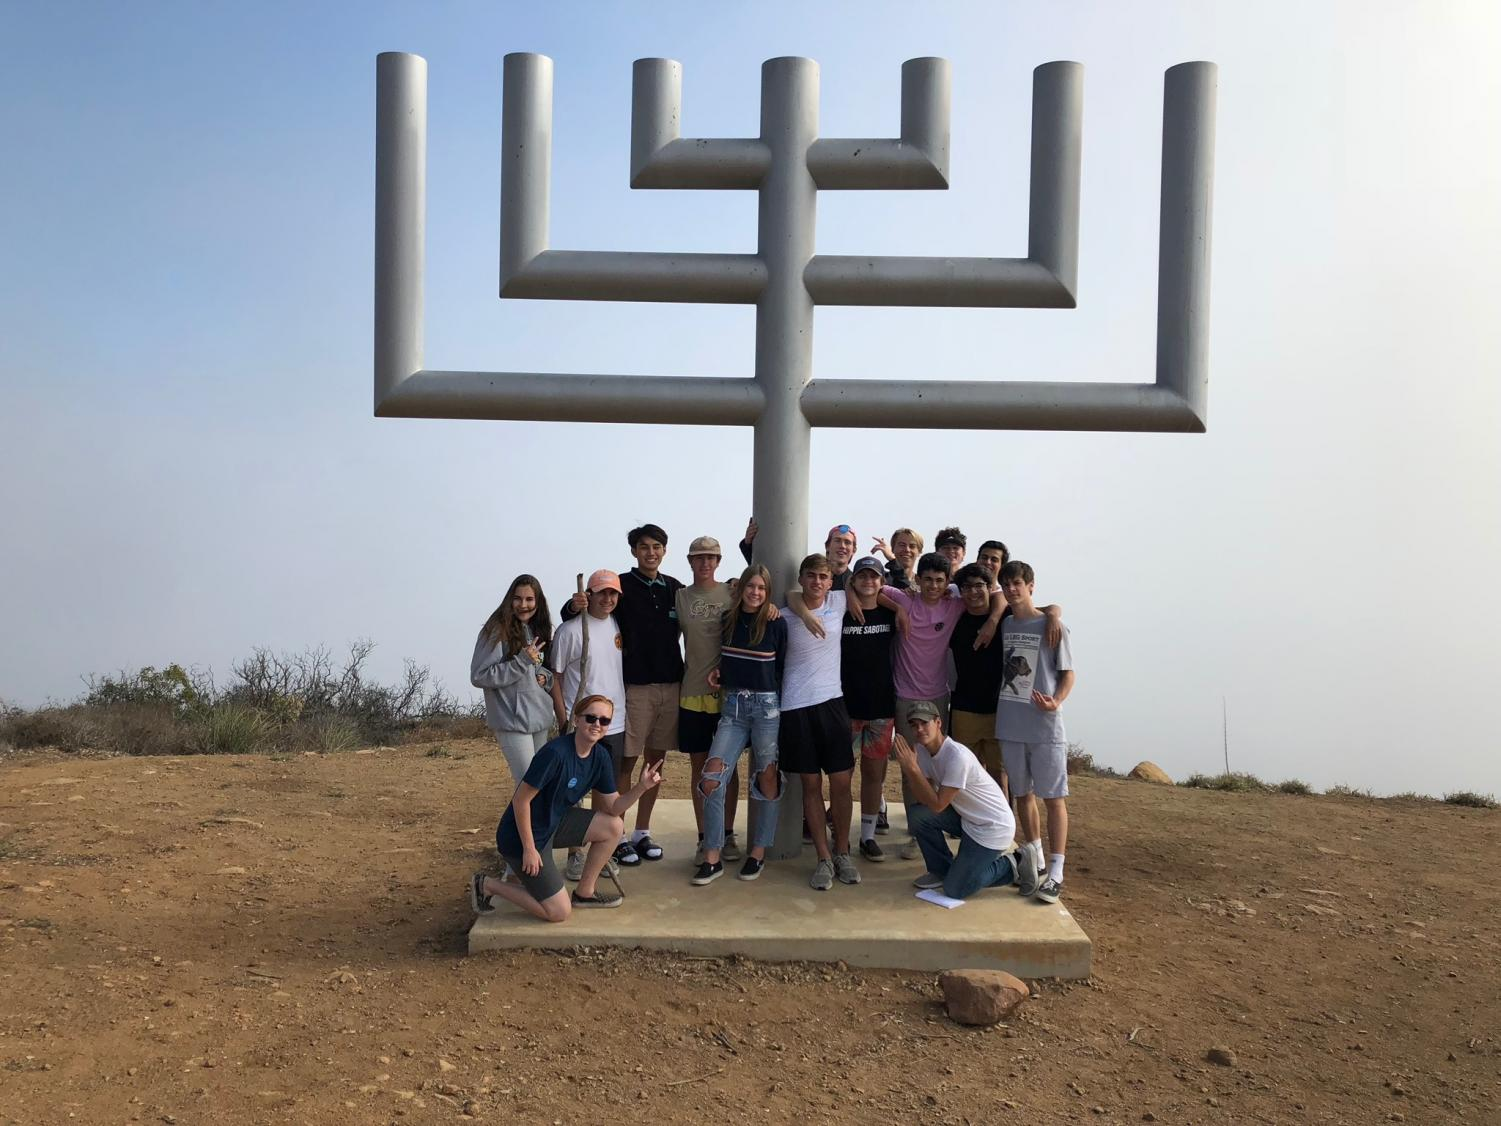 Students gather around the menorah, which stills stands after the campsite burned in Malibu during the Woolsey Fire